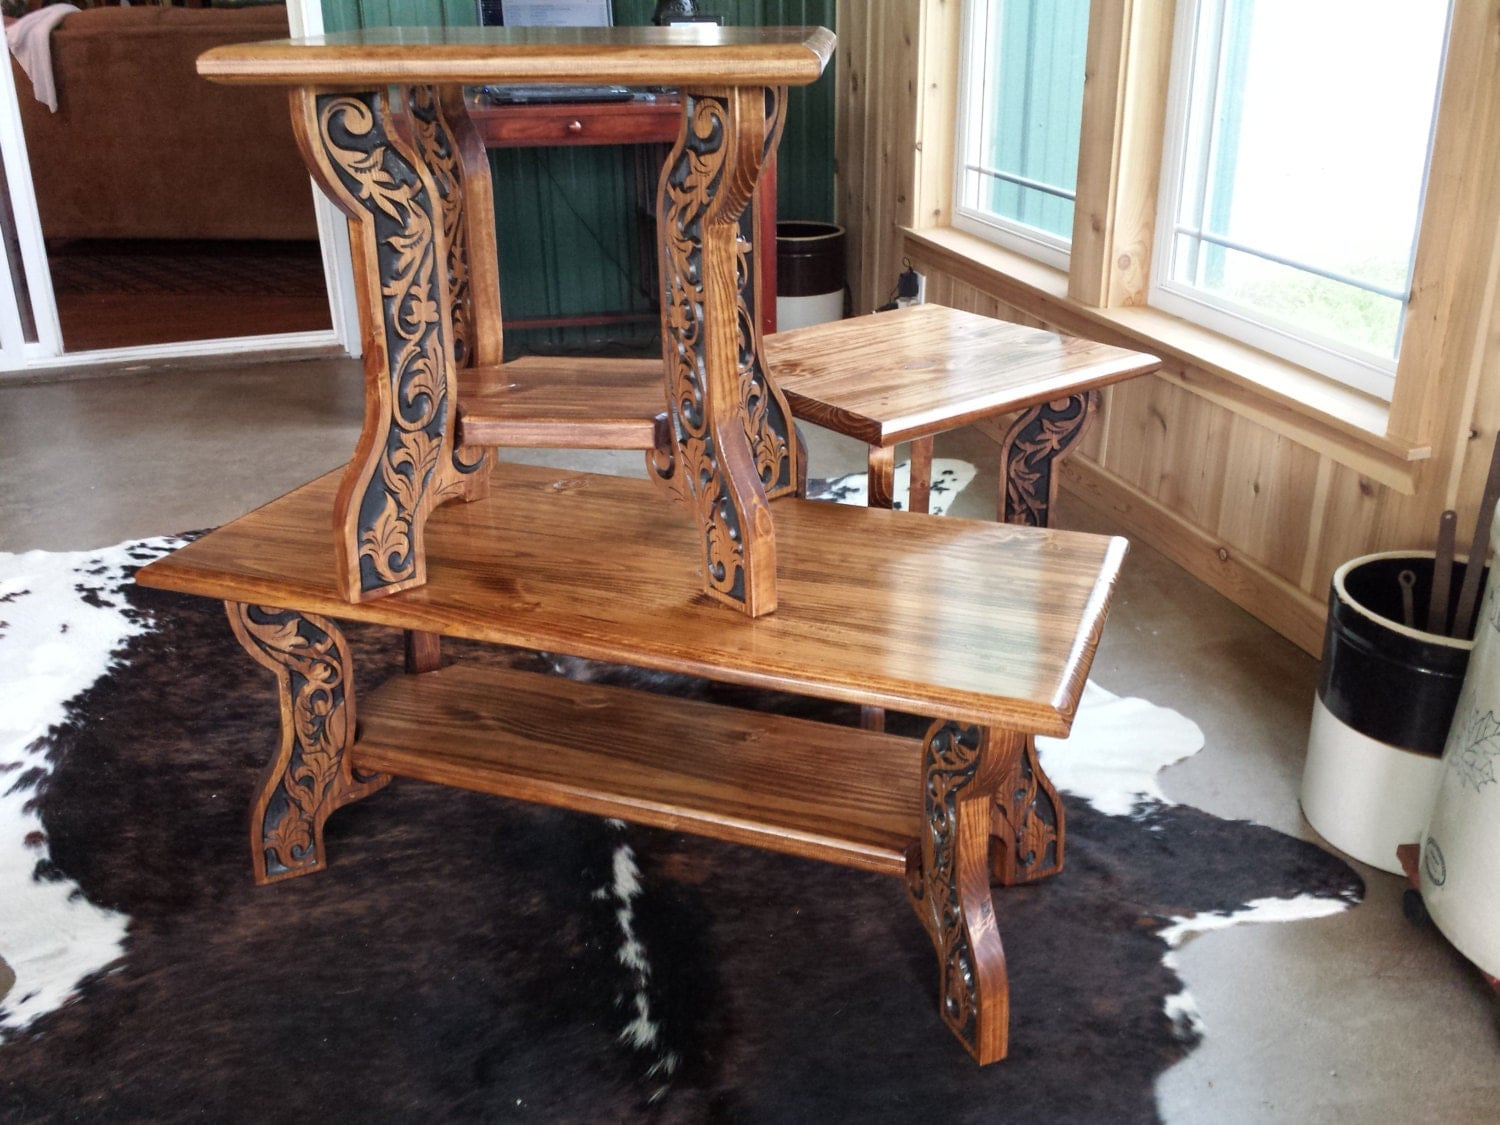 Western Style Coffee And End Tables Carved Wood Features Country Farmhouse  Or Ranch Decor Hand Painted And Finished Original Design Made USA